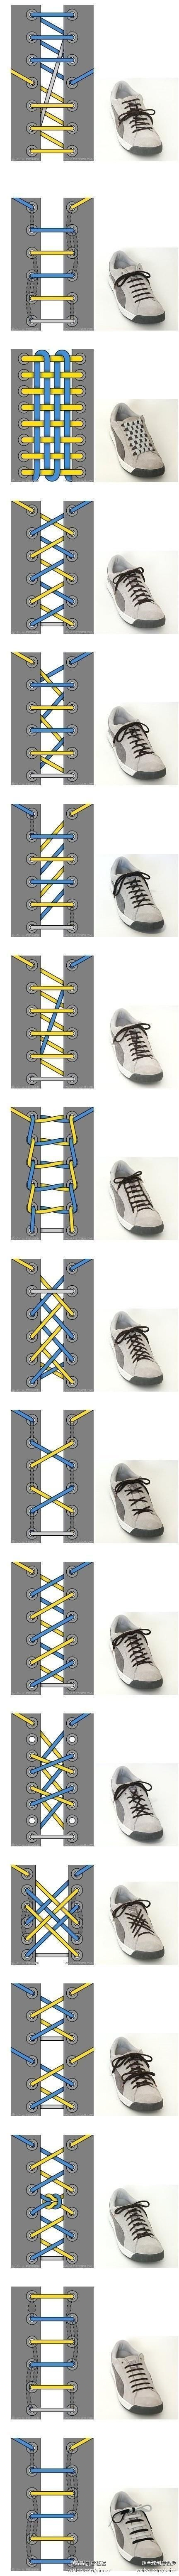 Shoe lace patterns never new there are so many ways to ie a shoe